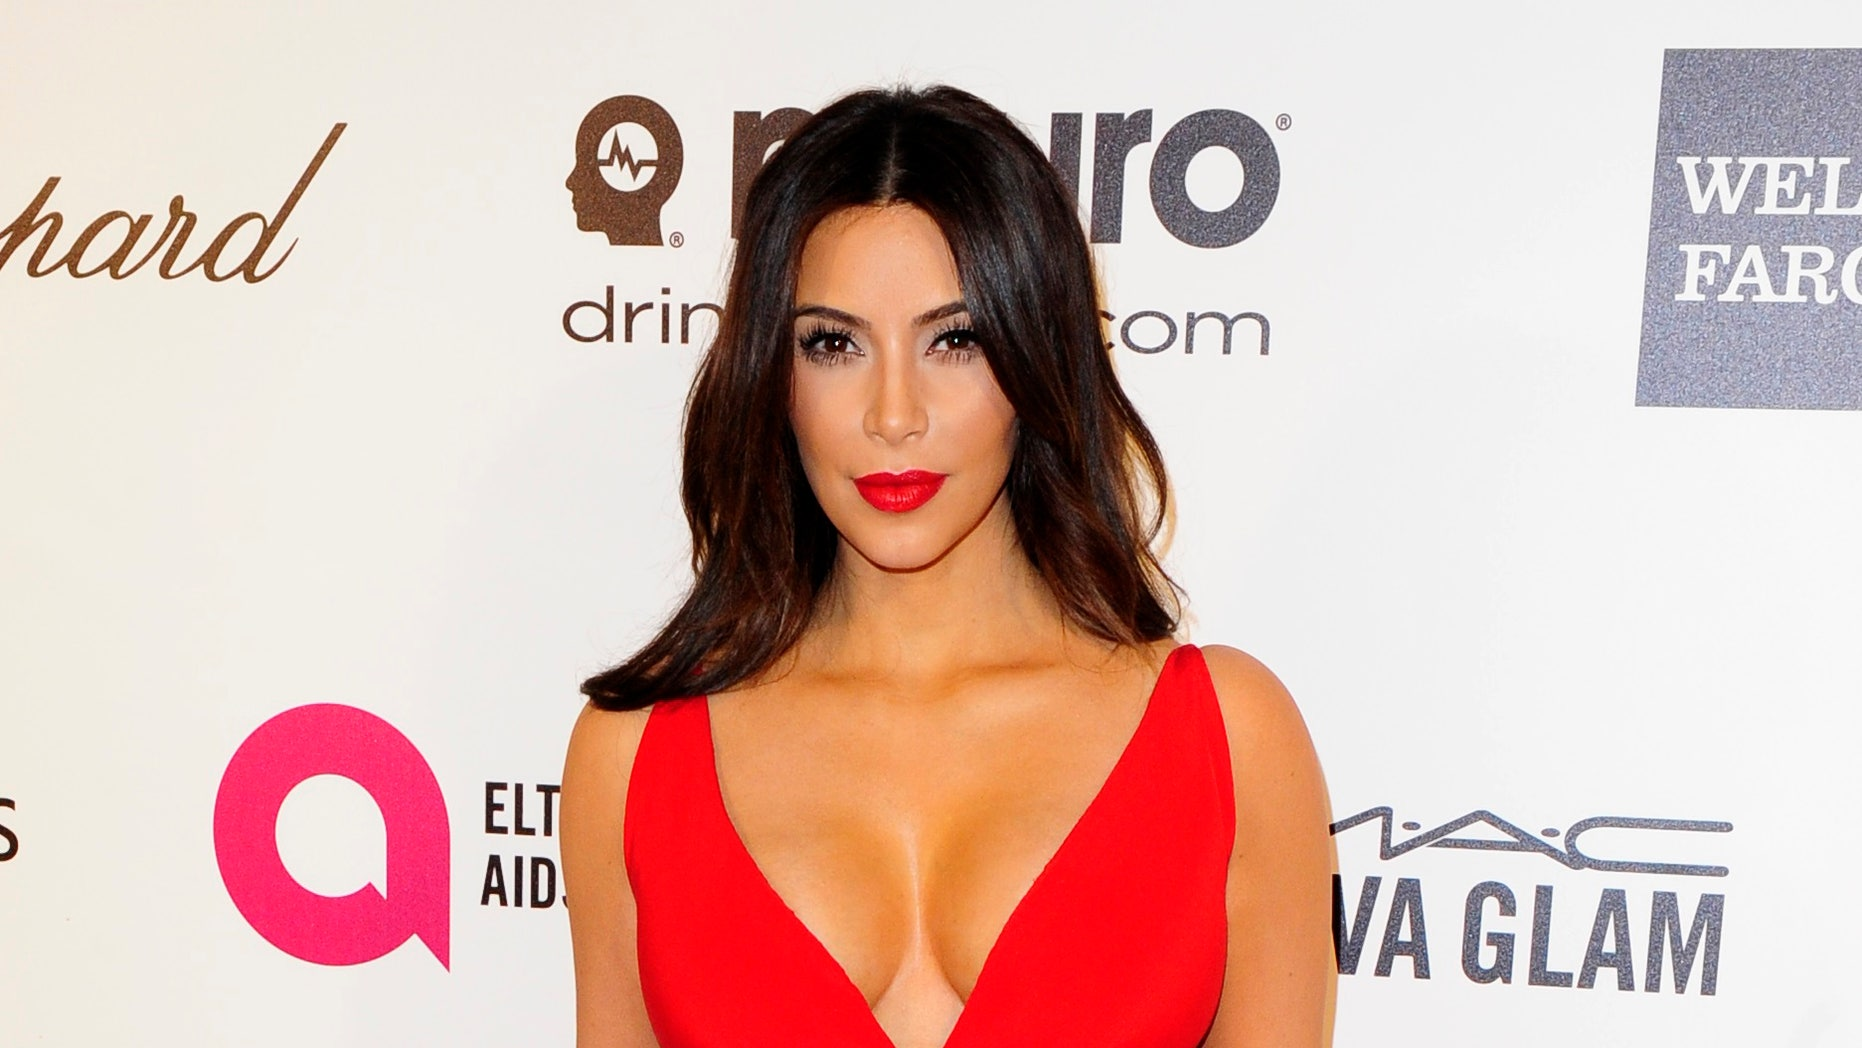 March 2, 2014. Television personality Kim Kardashian arrives at the 2014 Elton John AIDS Foundation Oscar Party in West Hollywood, California.